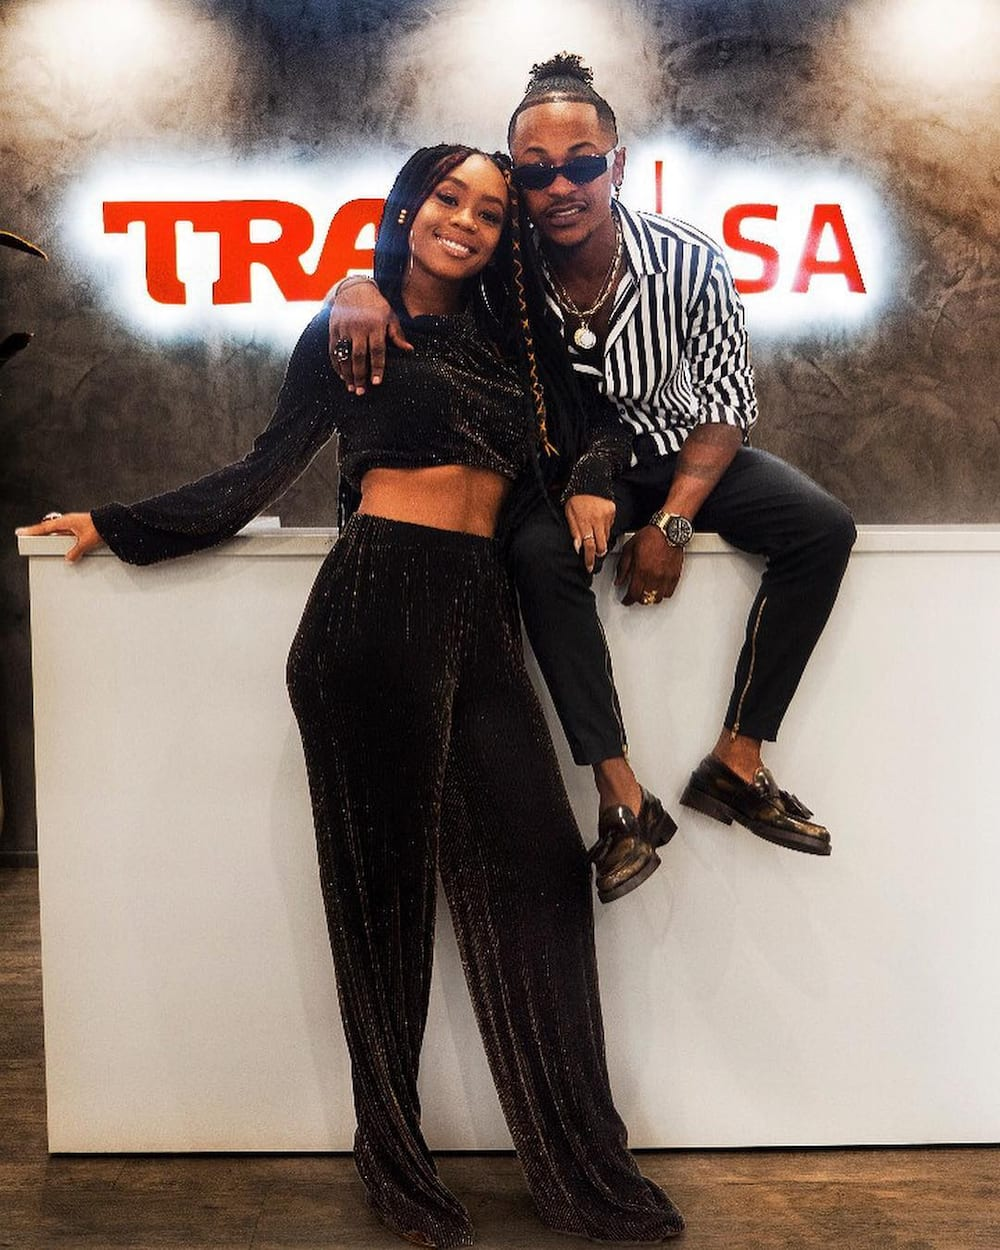 Priddy Ugly melts hearts with sweet 1st wedding anniversary post